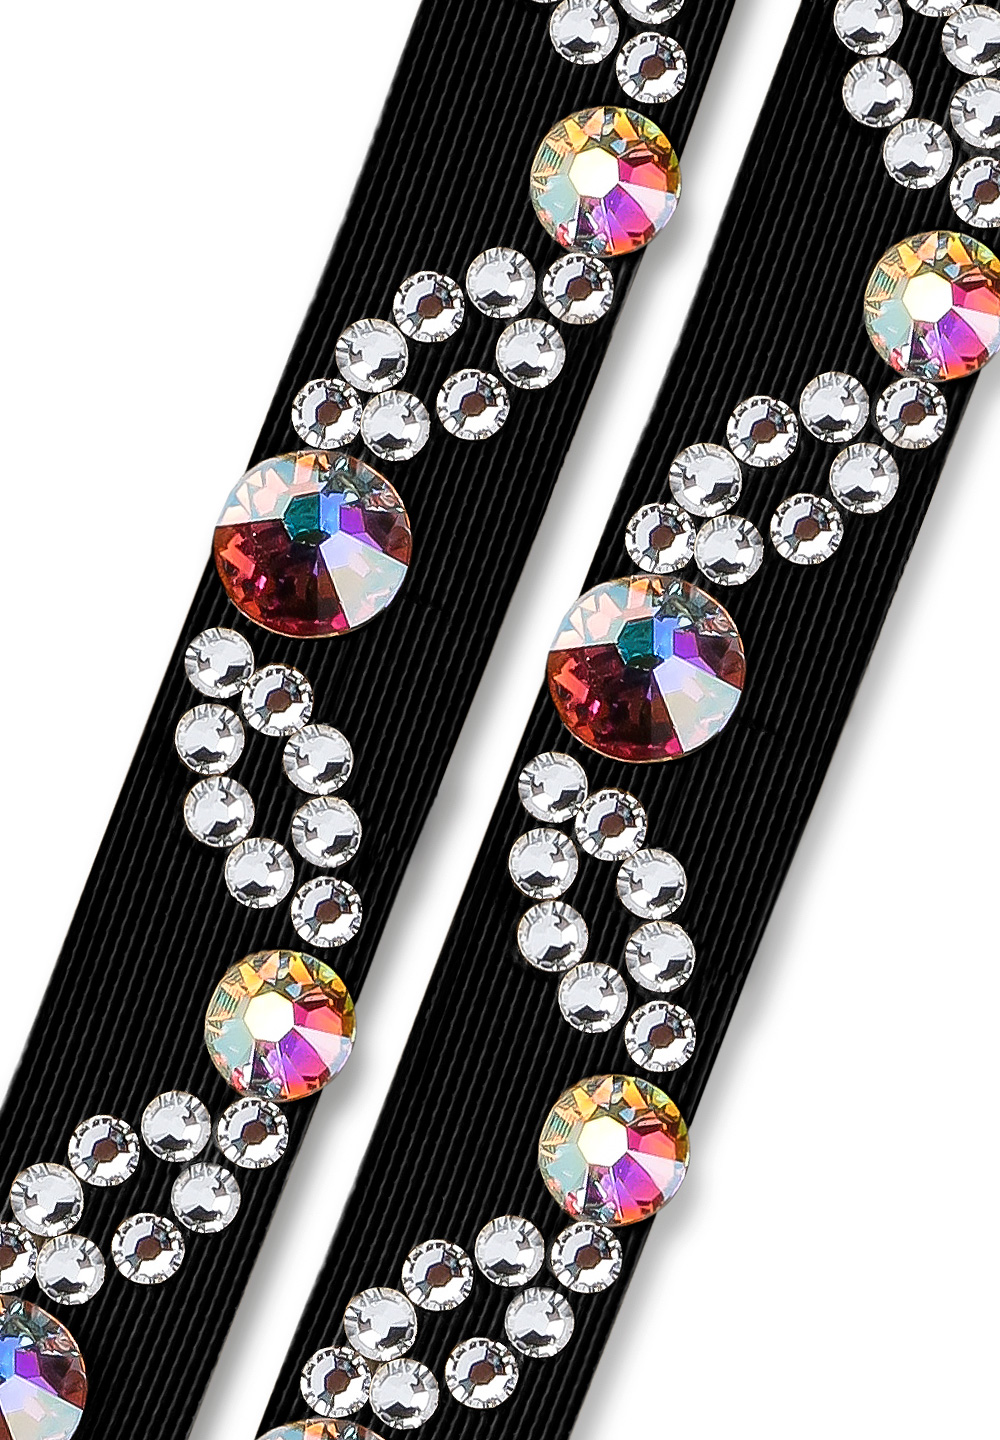 Ballroom Ave Crystallized Shoe Straps CS506 BLK